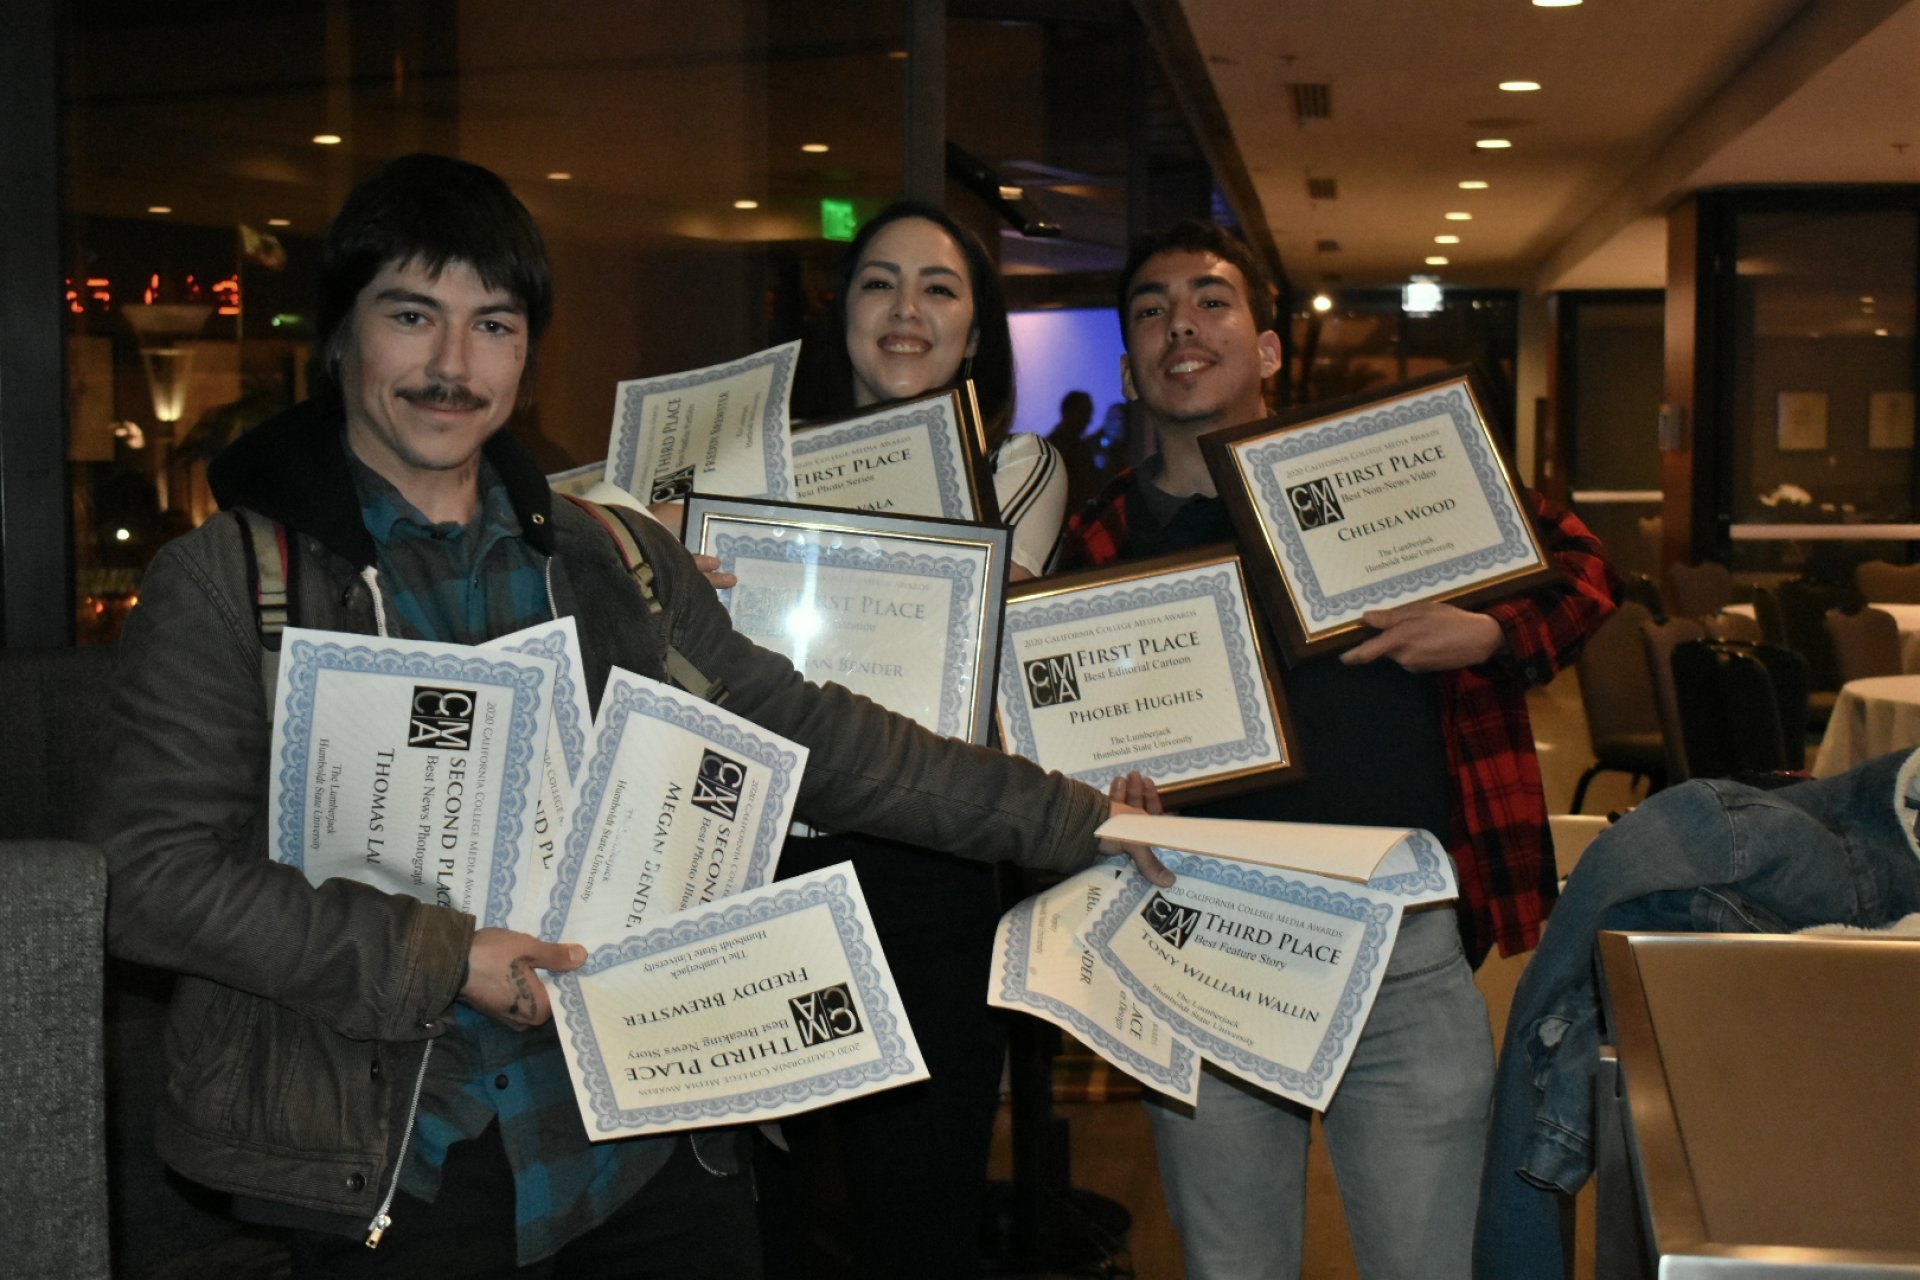 Humboldt State journalism students Tony Wallin, Megan Bender and Jose Herrera show off some of the awards won by HSU journalism students at the California College Media Association Excellence in Student Media awards banquet Feb. 29 in San Francisco. | Photo by Vanessa Flores